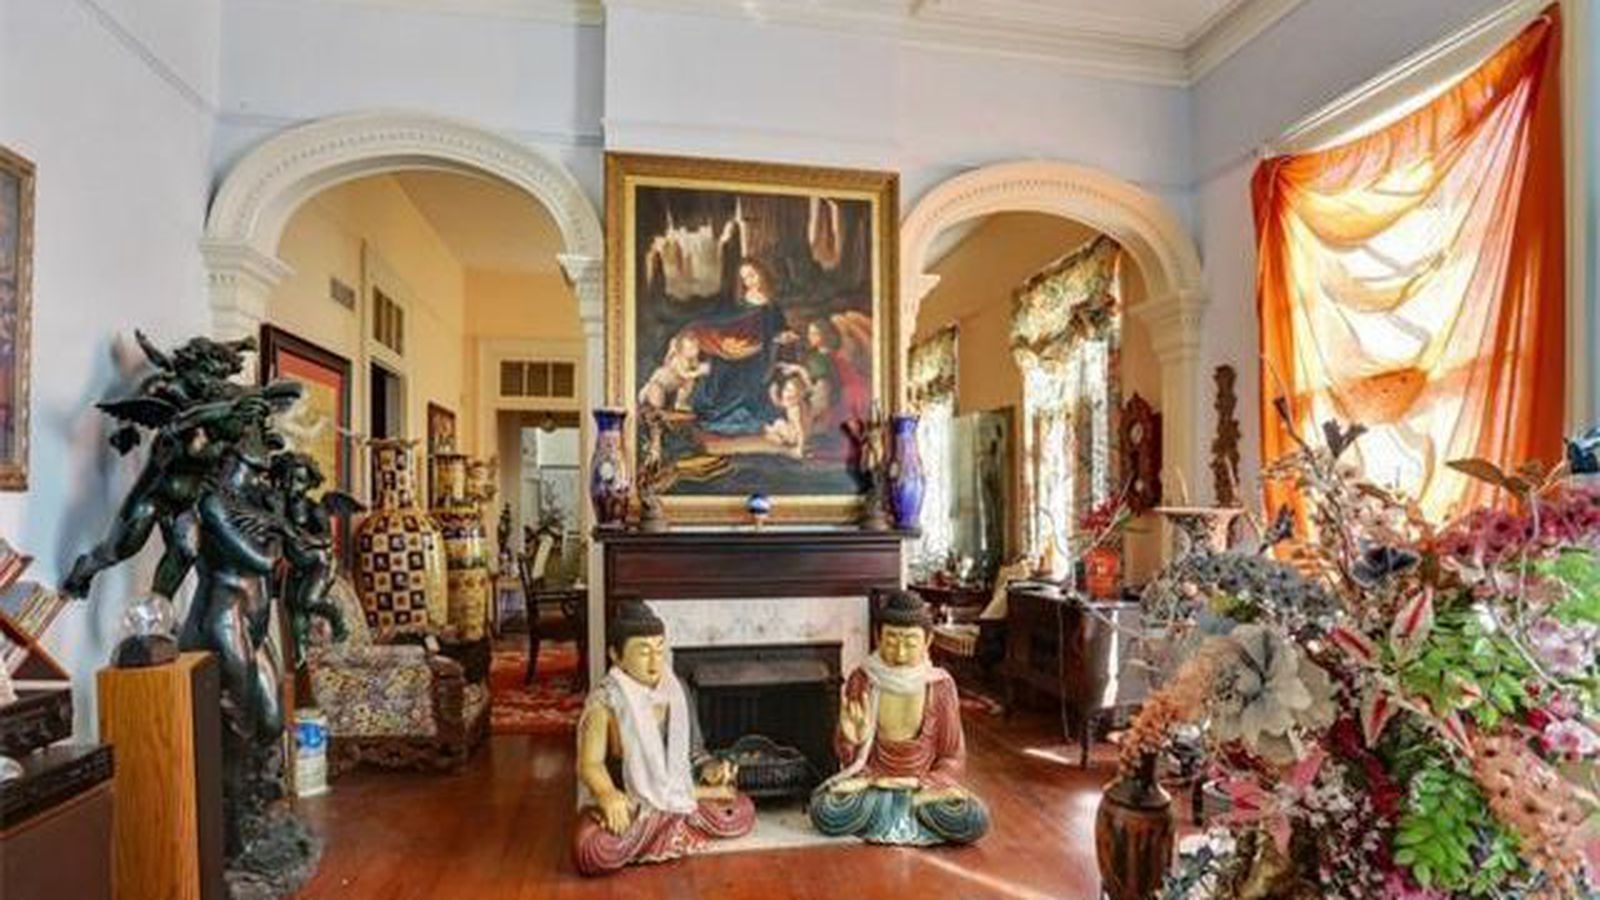 Garden District Victorian With Bonkers Decor Asks 990k